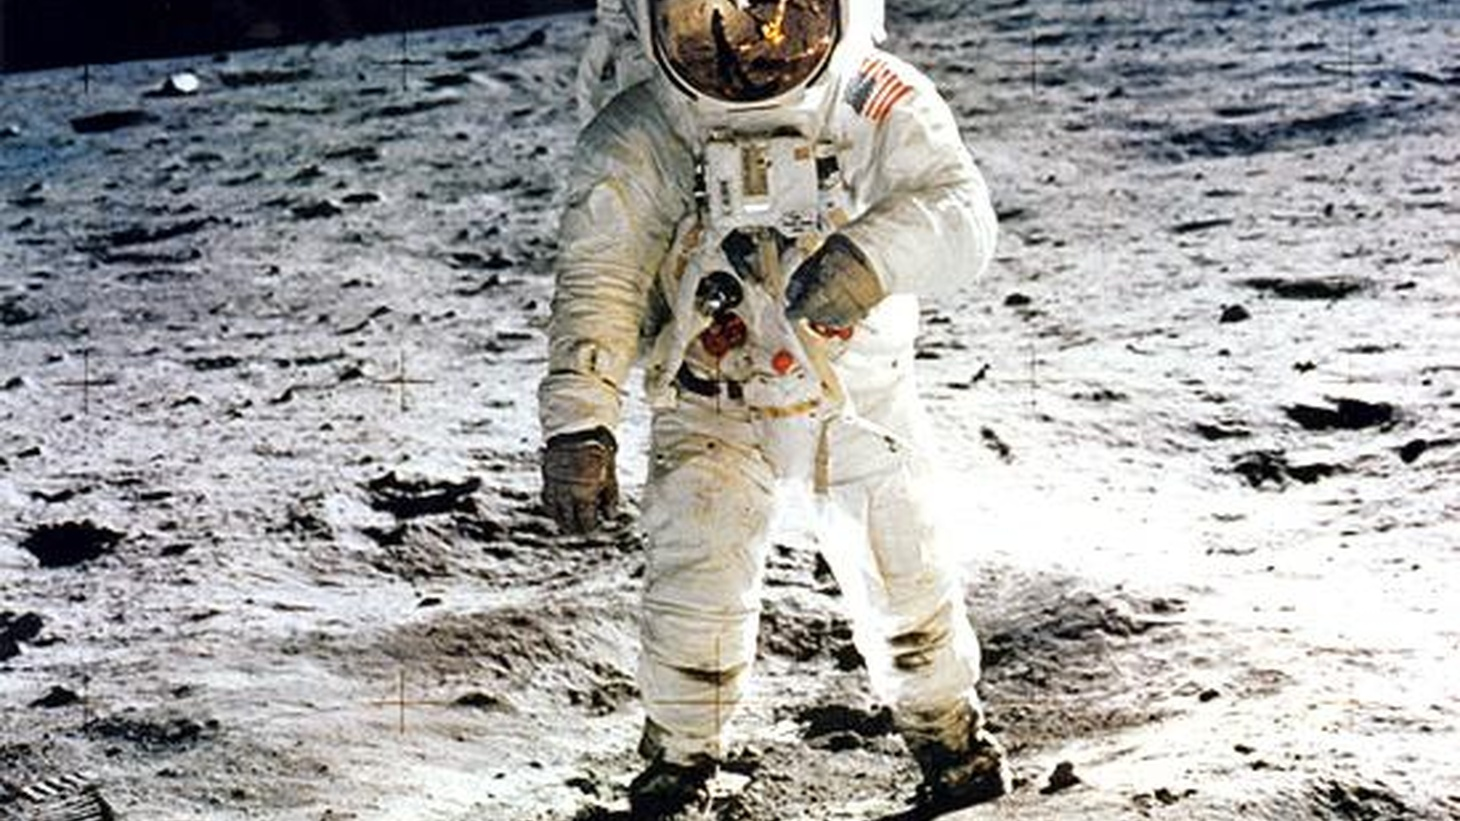 Forty years ago today, Buzz Aldrin became the second man to walk on the Moon. Was that the outer limit of human capacity? Should we let robots take it from there or should we humans try to reach Mars? We talk with Buzz Aldrin and others. Also, tensions rise in Afghanistan, and I.F. Stone, who blogged before there was an Internet.